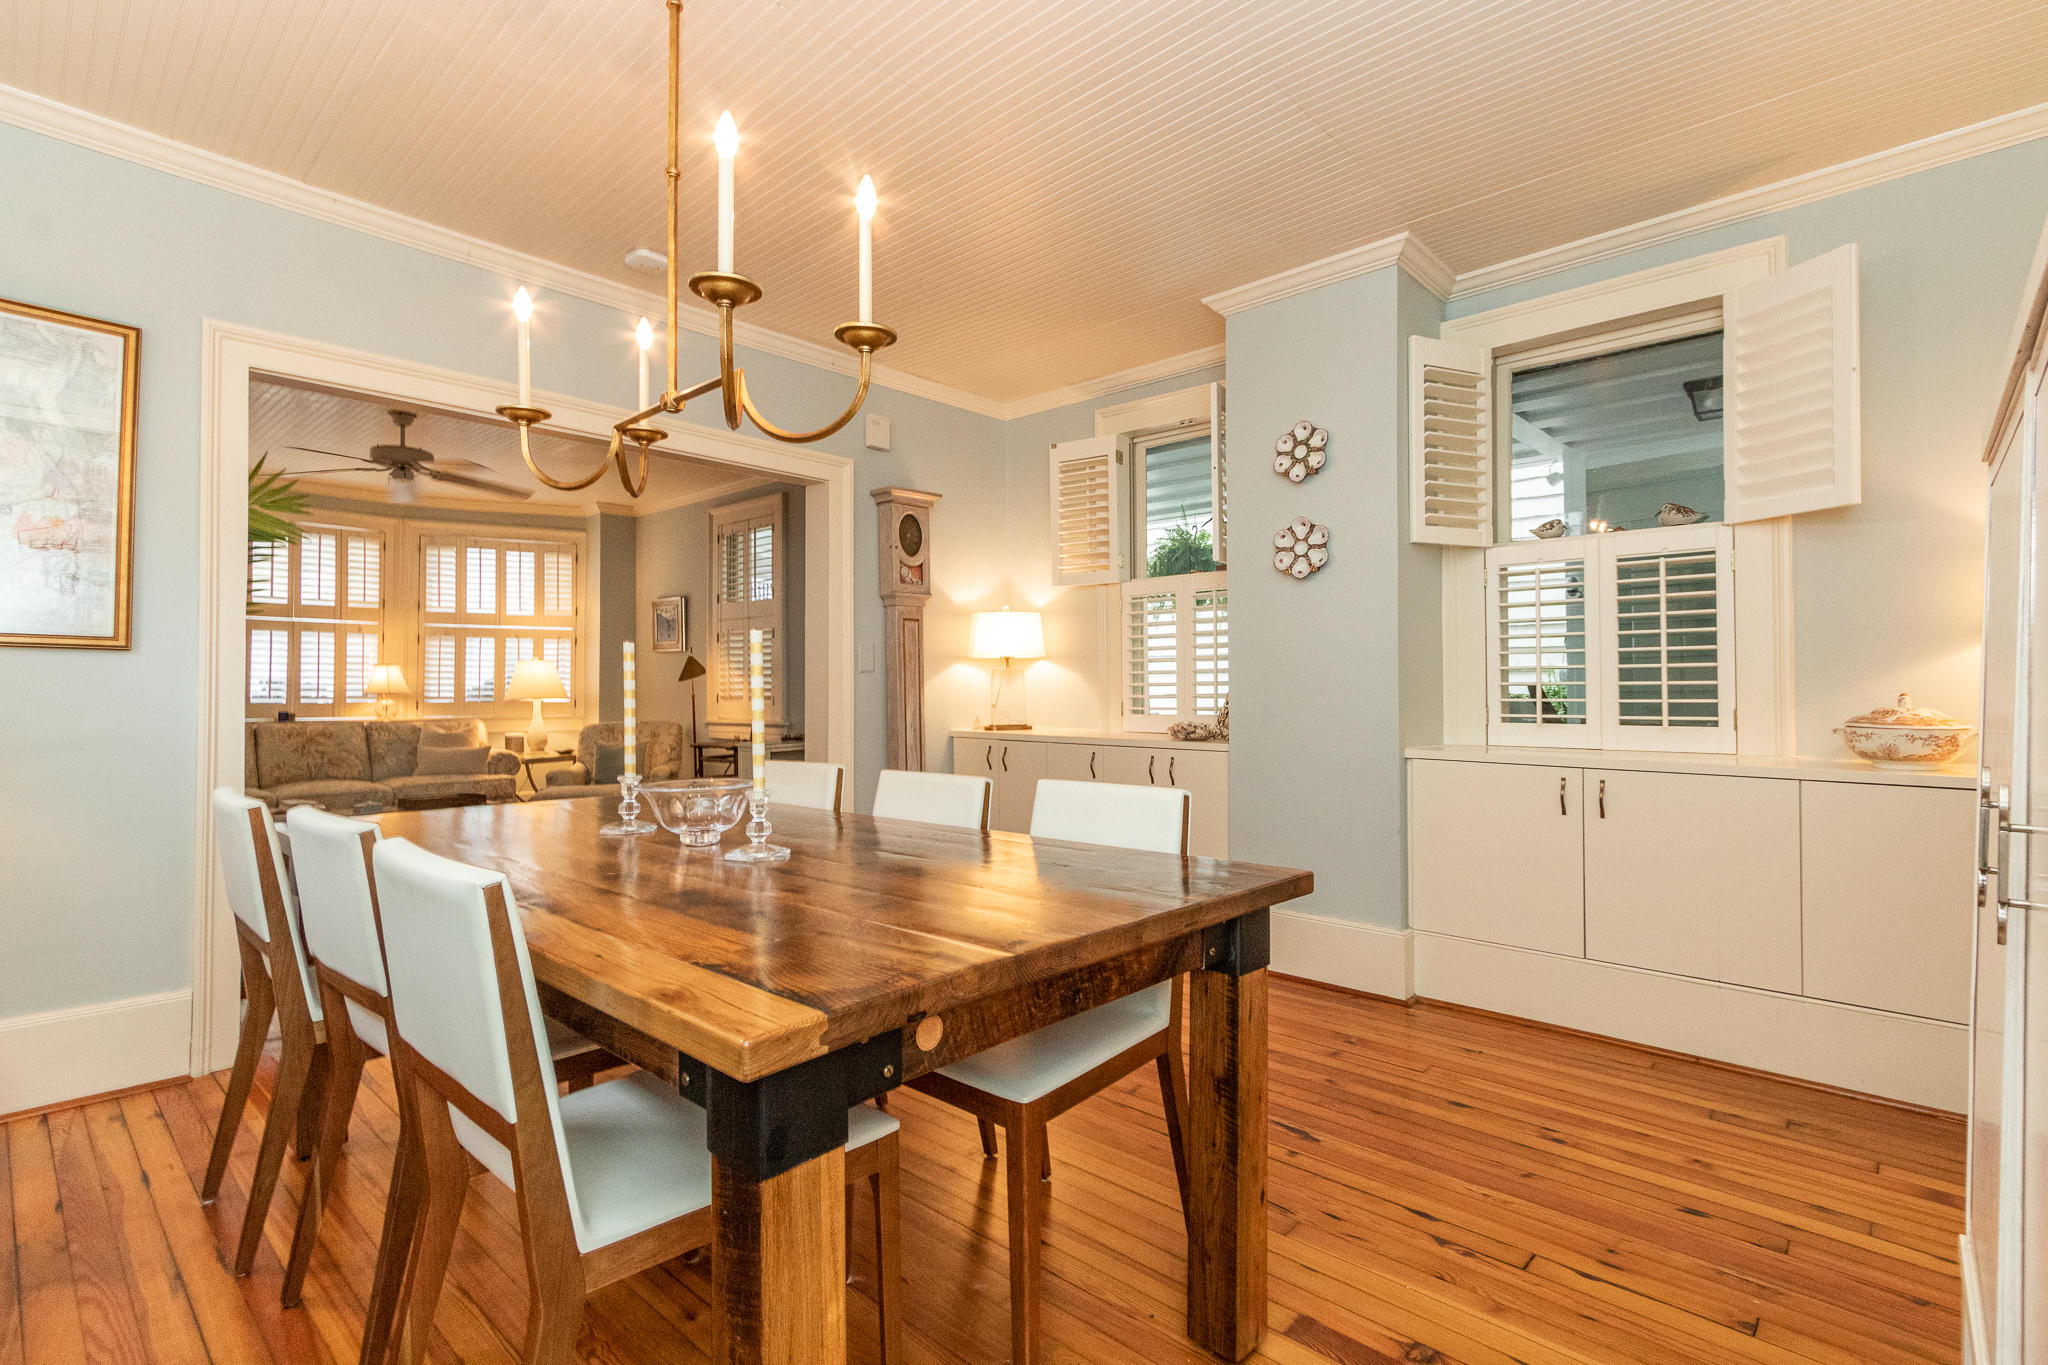 South of Broad Homes For Sale - 164 Tradd, Charleston, SC - 28